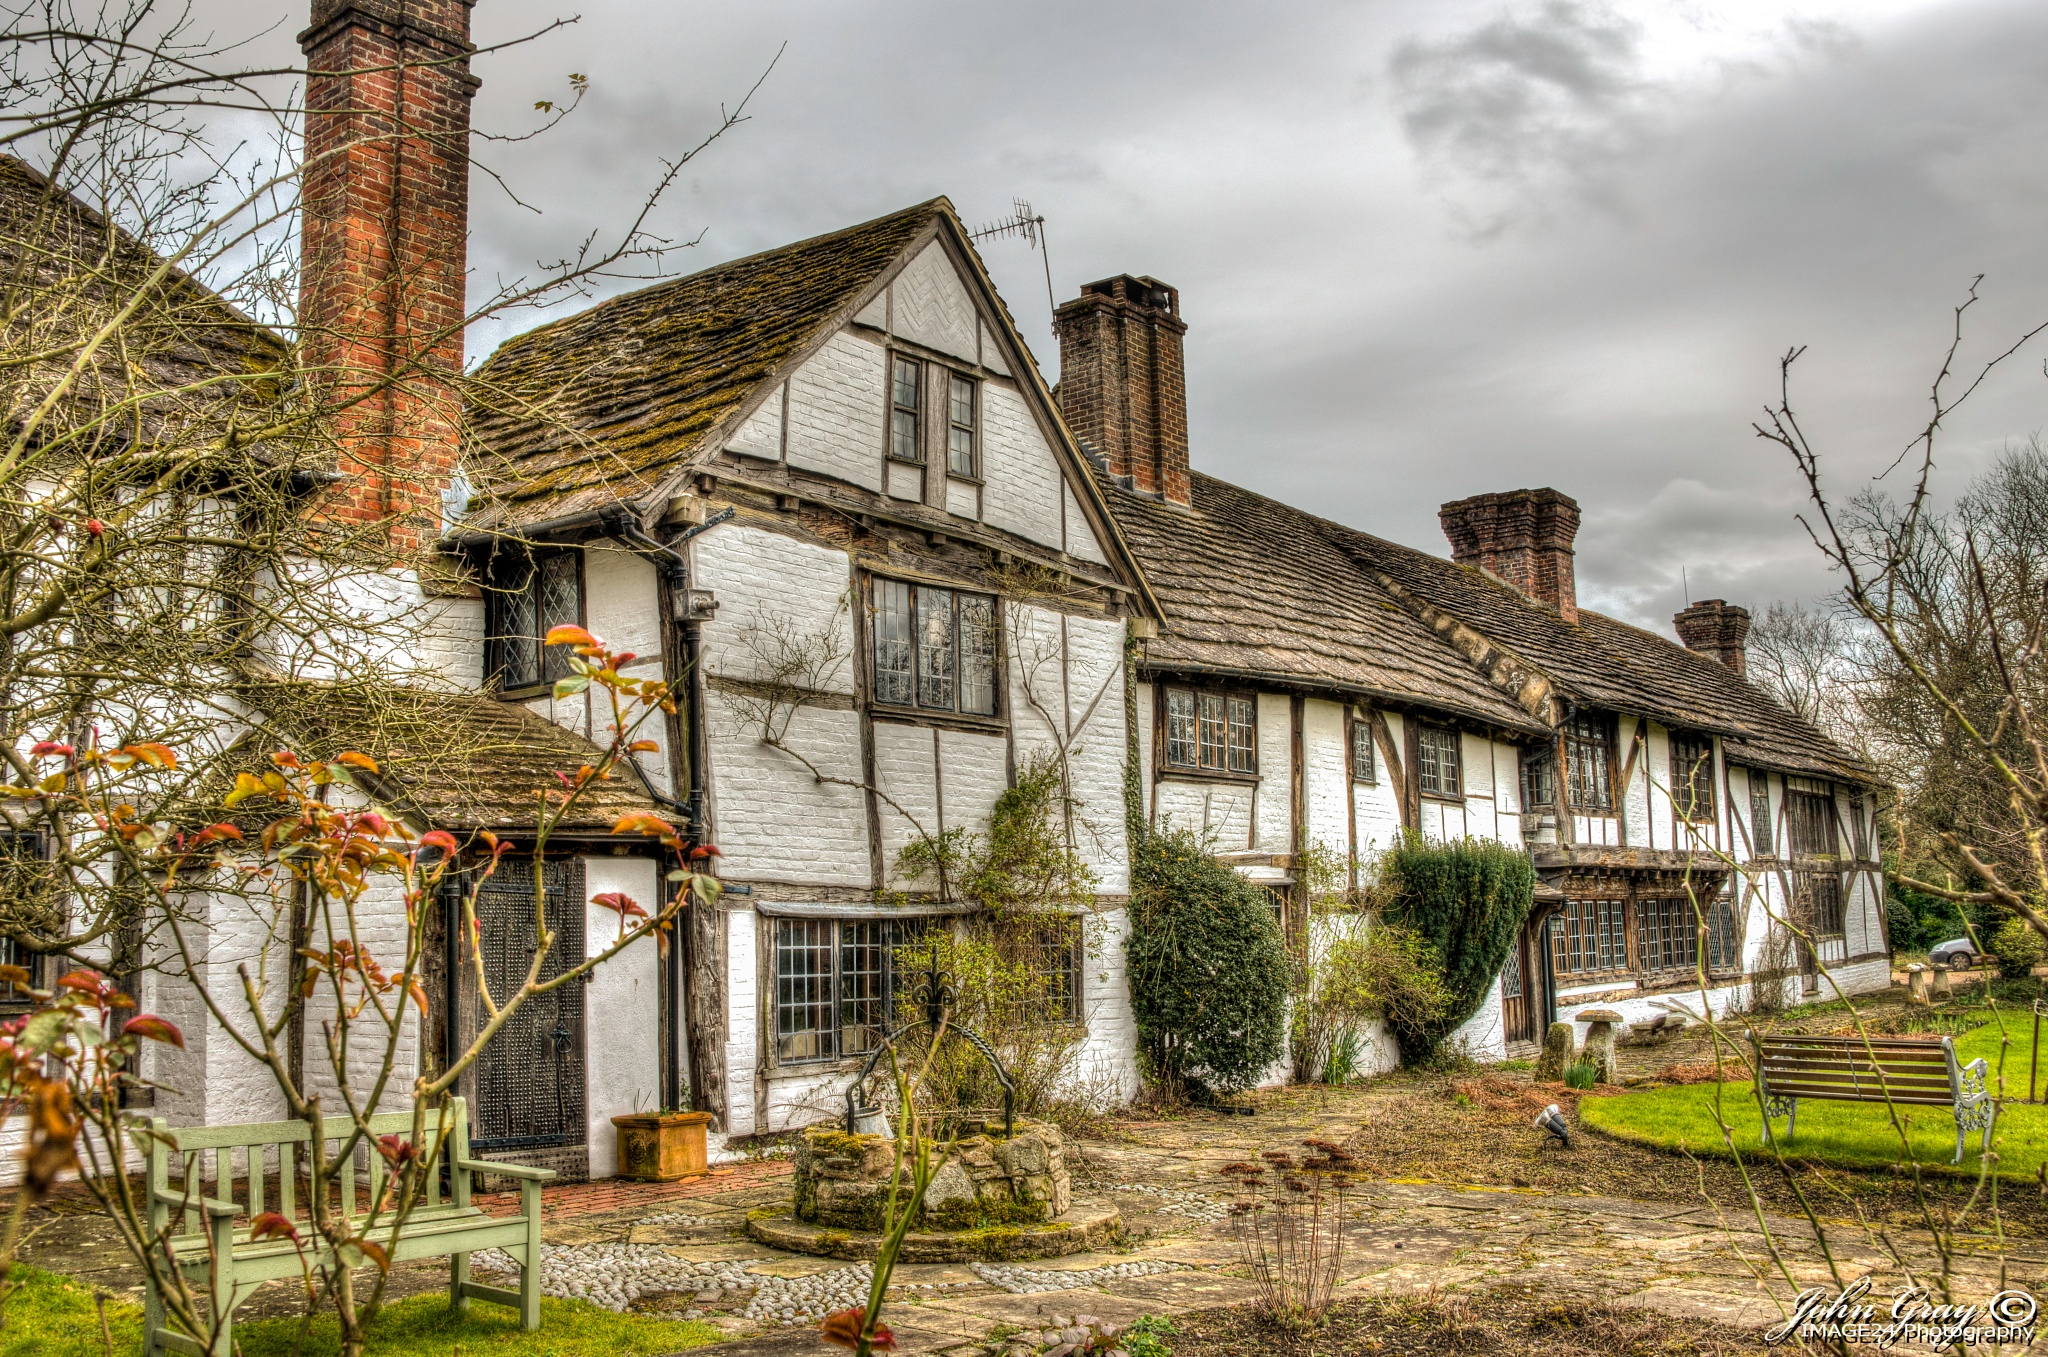 Priest's House, Leigh, Surrey by image24